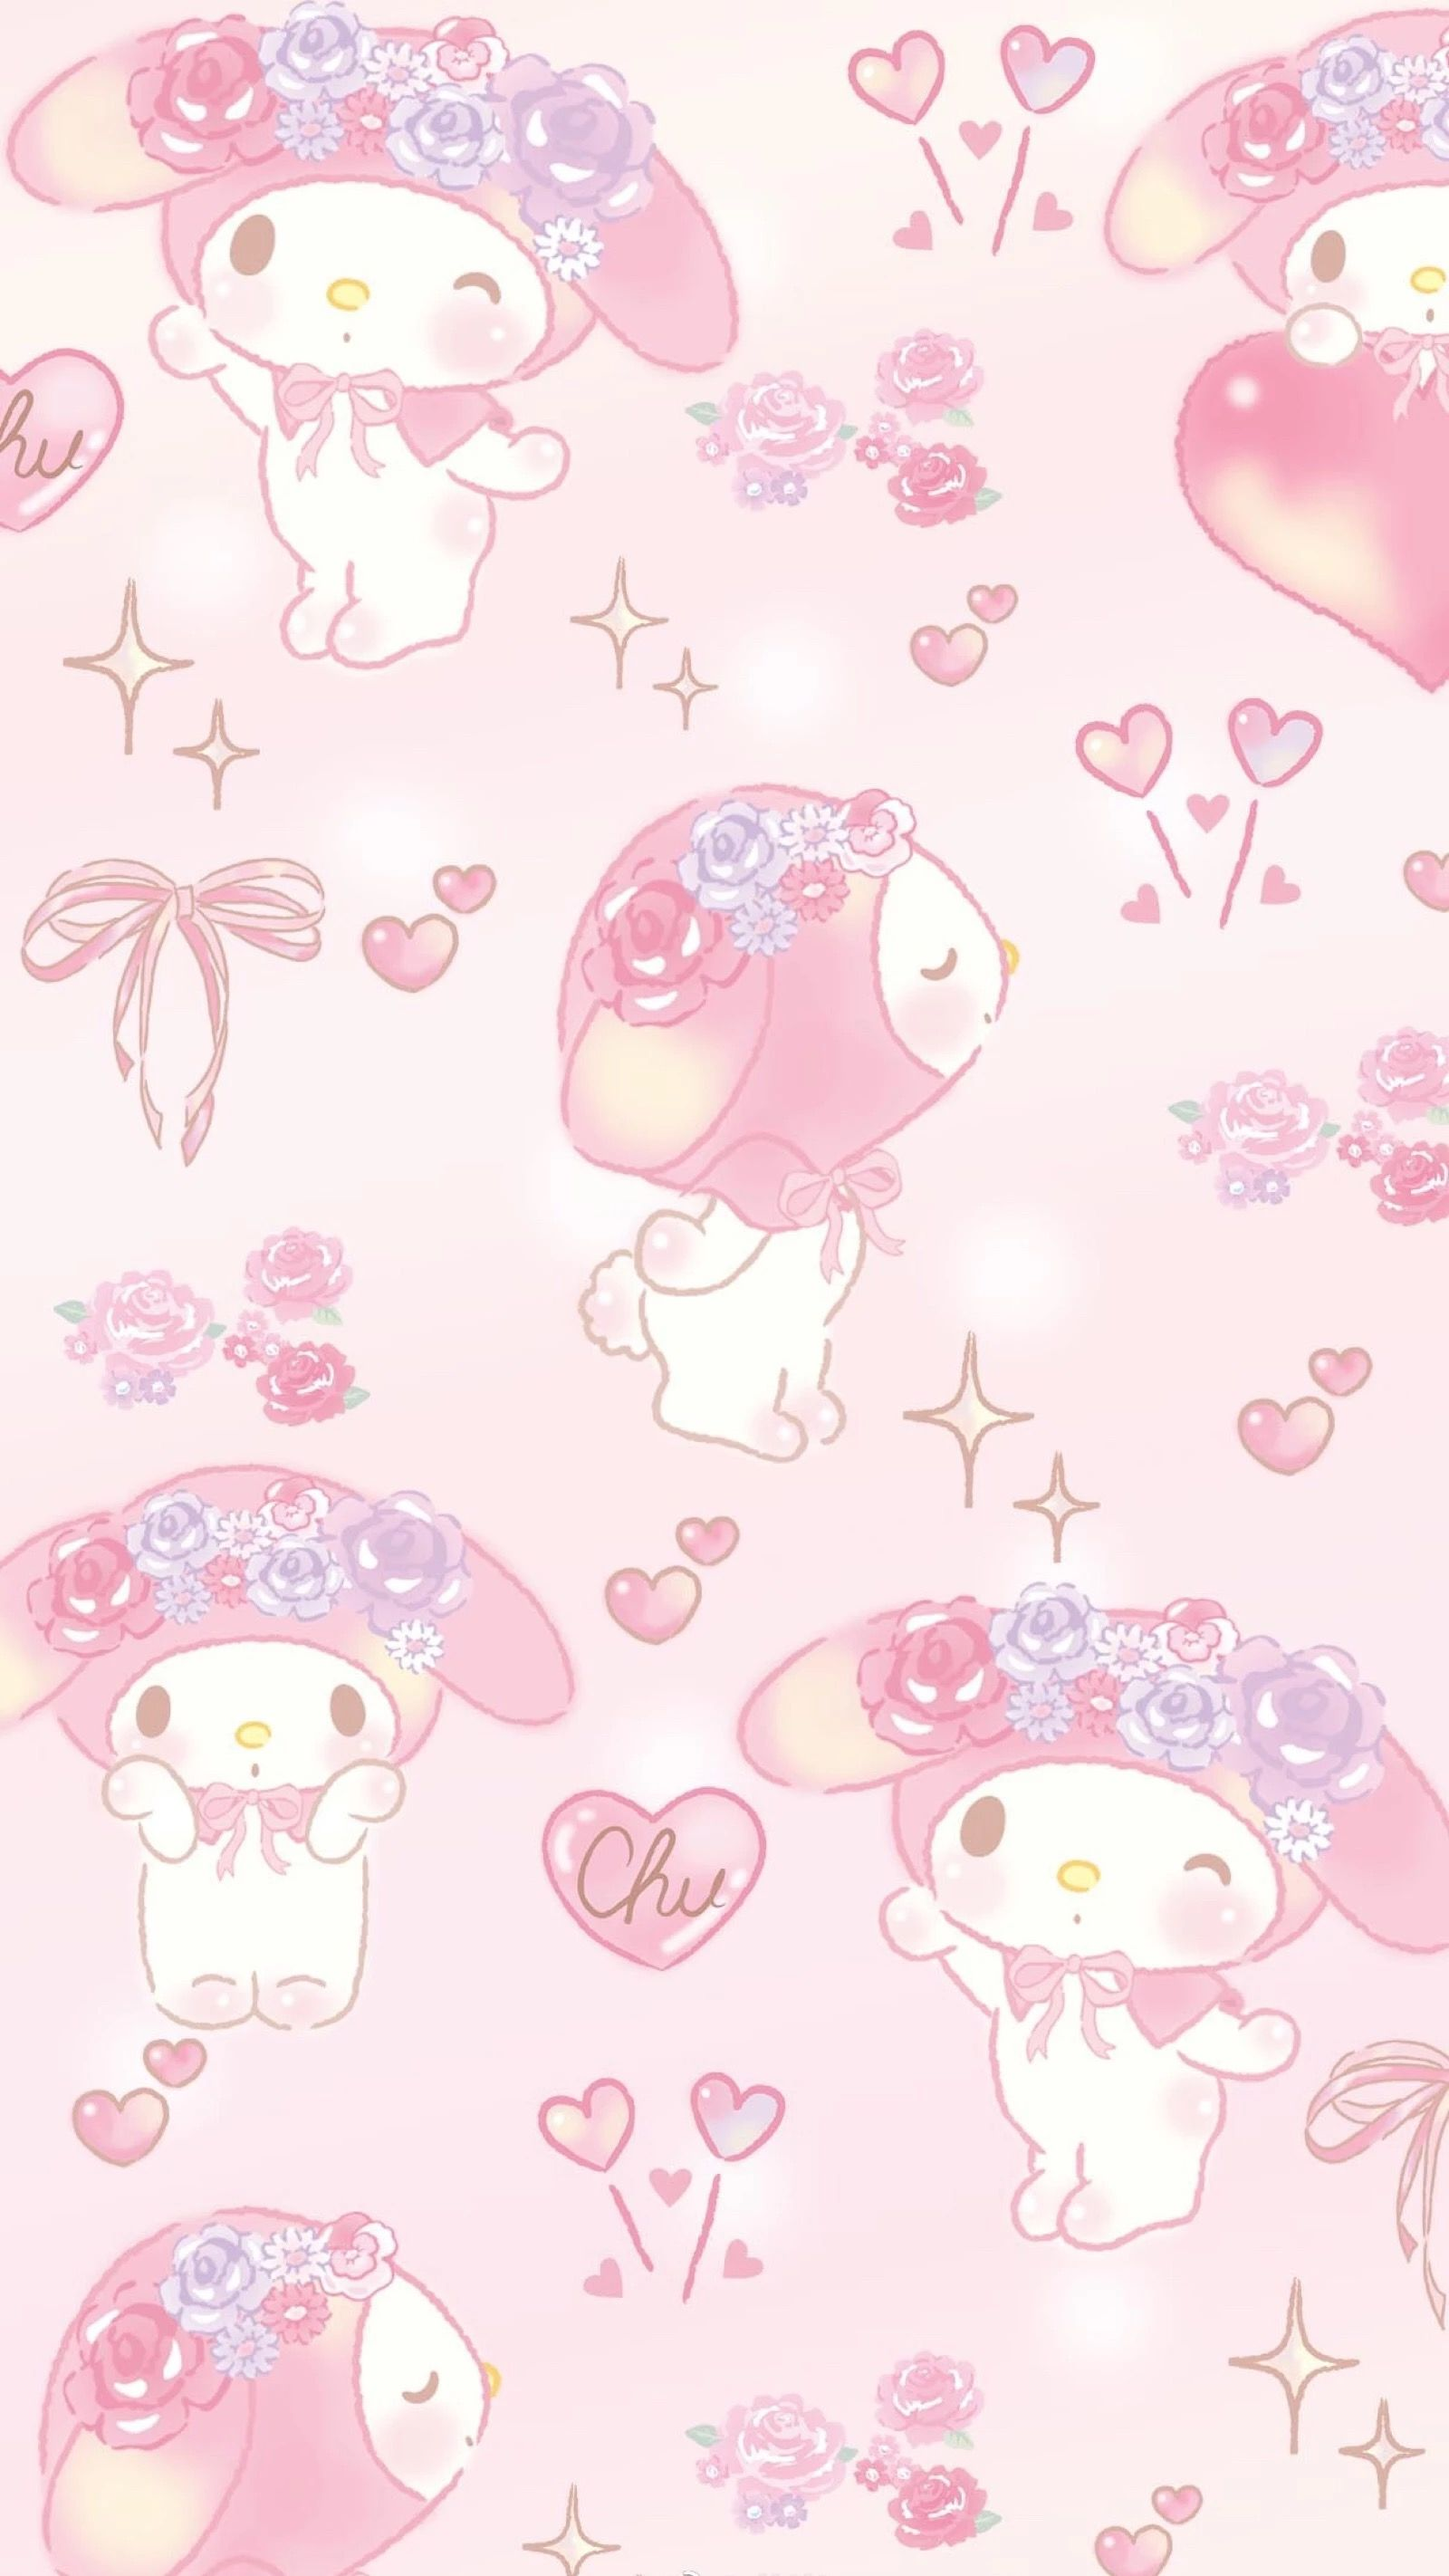 500 Mymelody Ideas My Melody My Melody Wallpaper Sanrio Wallpaper